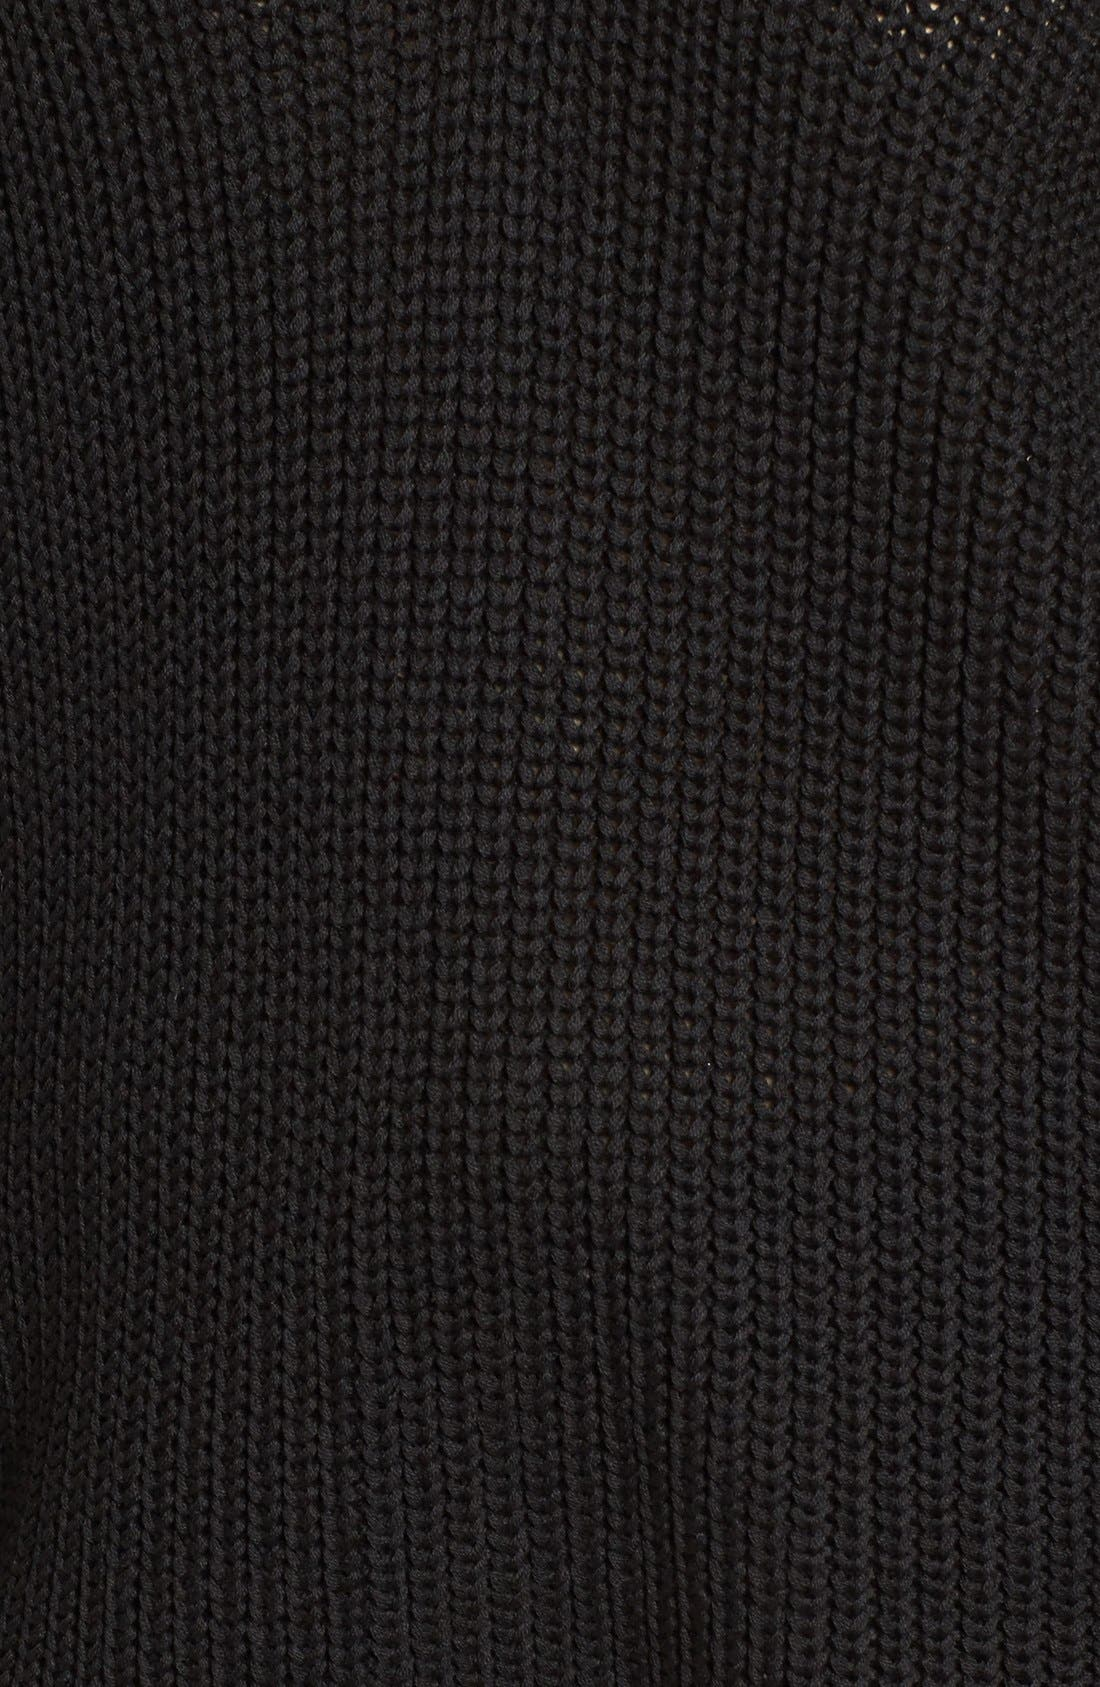 Lace-Up Back Sweater,                             Alternate thumbnail 3, color,                             001